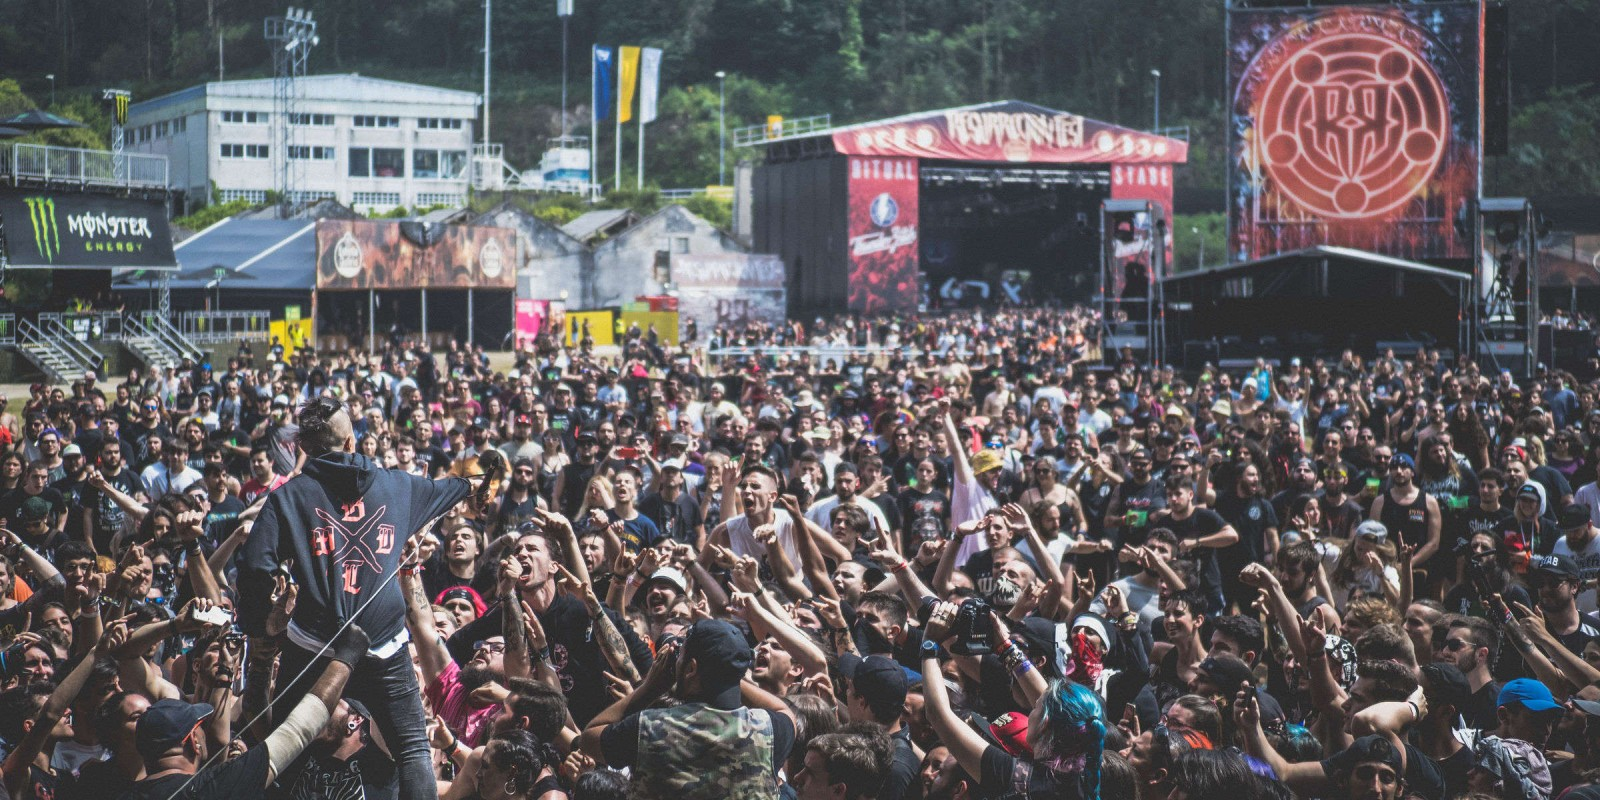 BAtch  of photos at Resurrection Fest 2019 in Viveiro, Spain